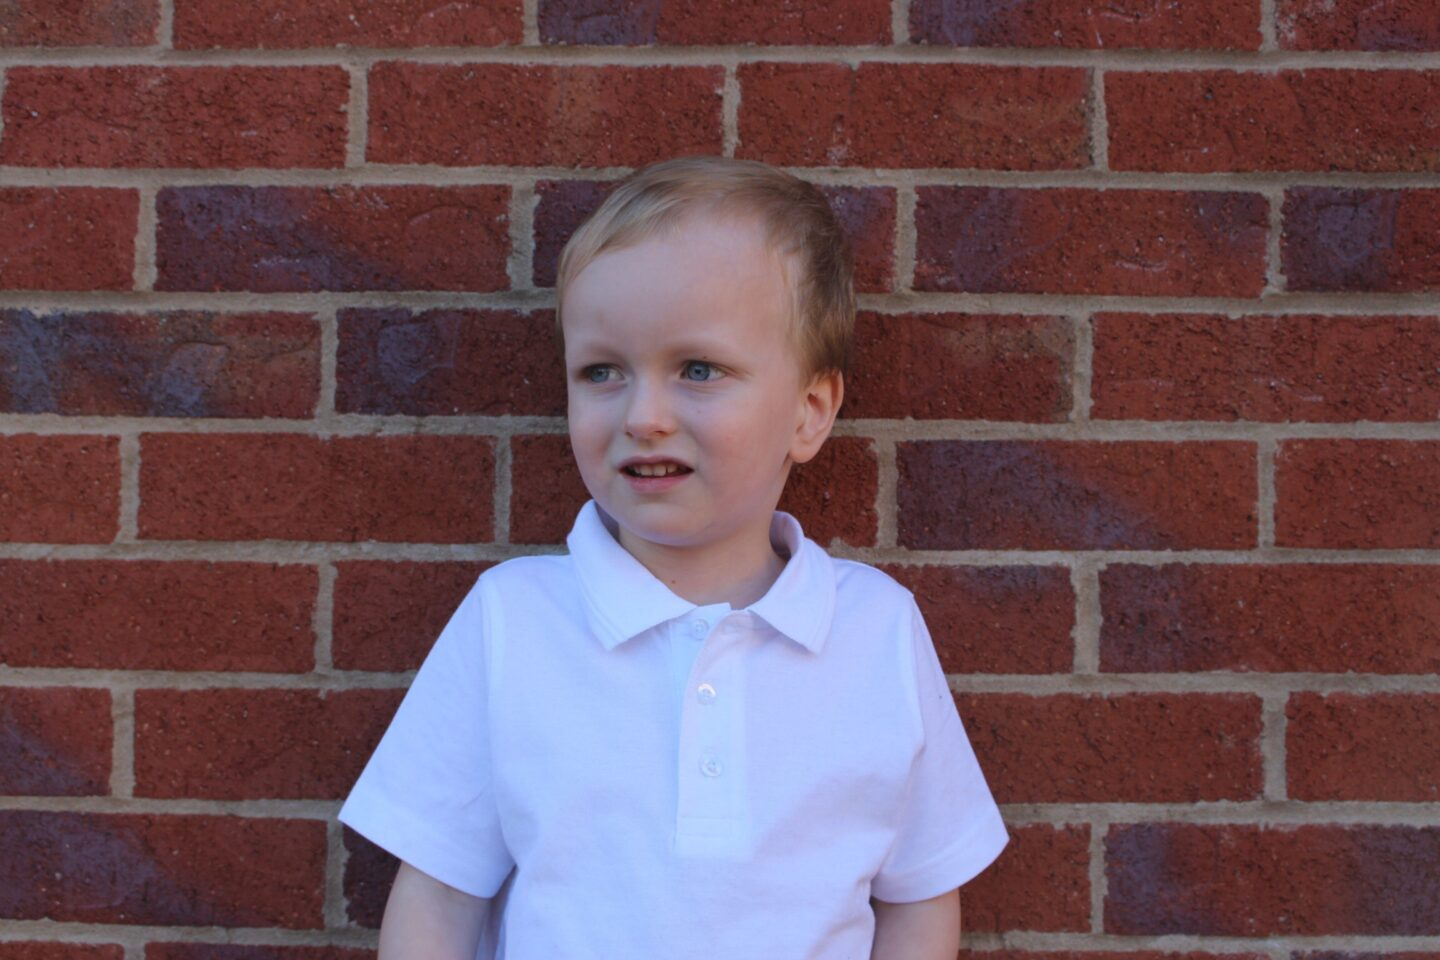 A 4 year old boy in his school top looking pensive